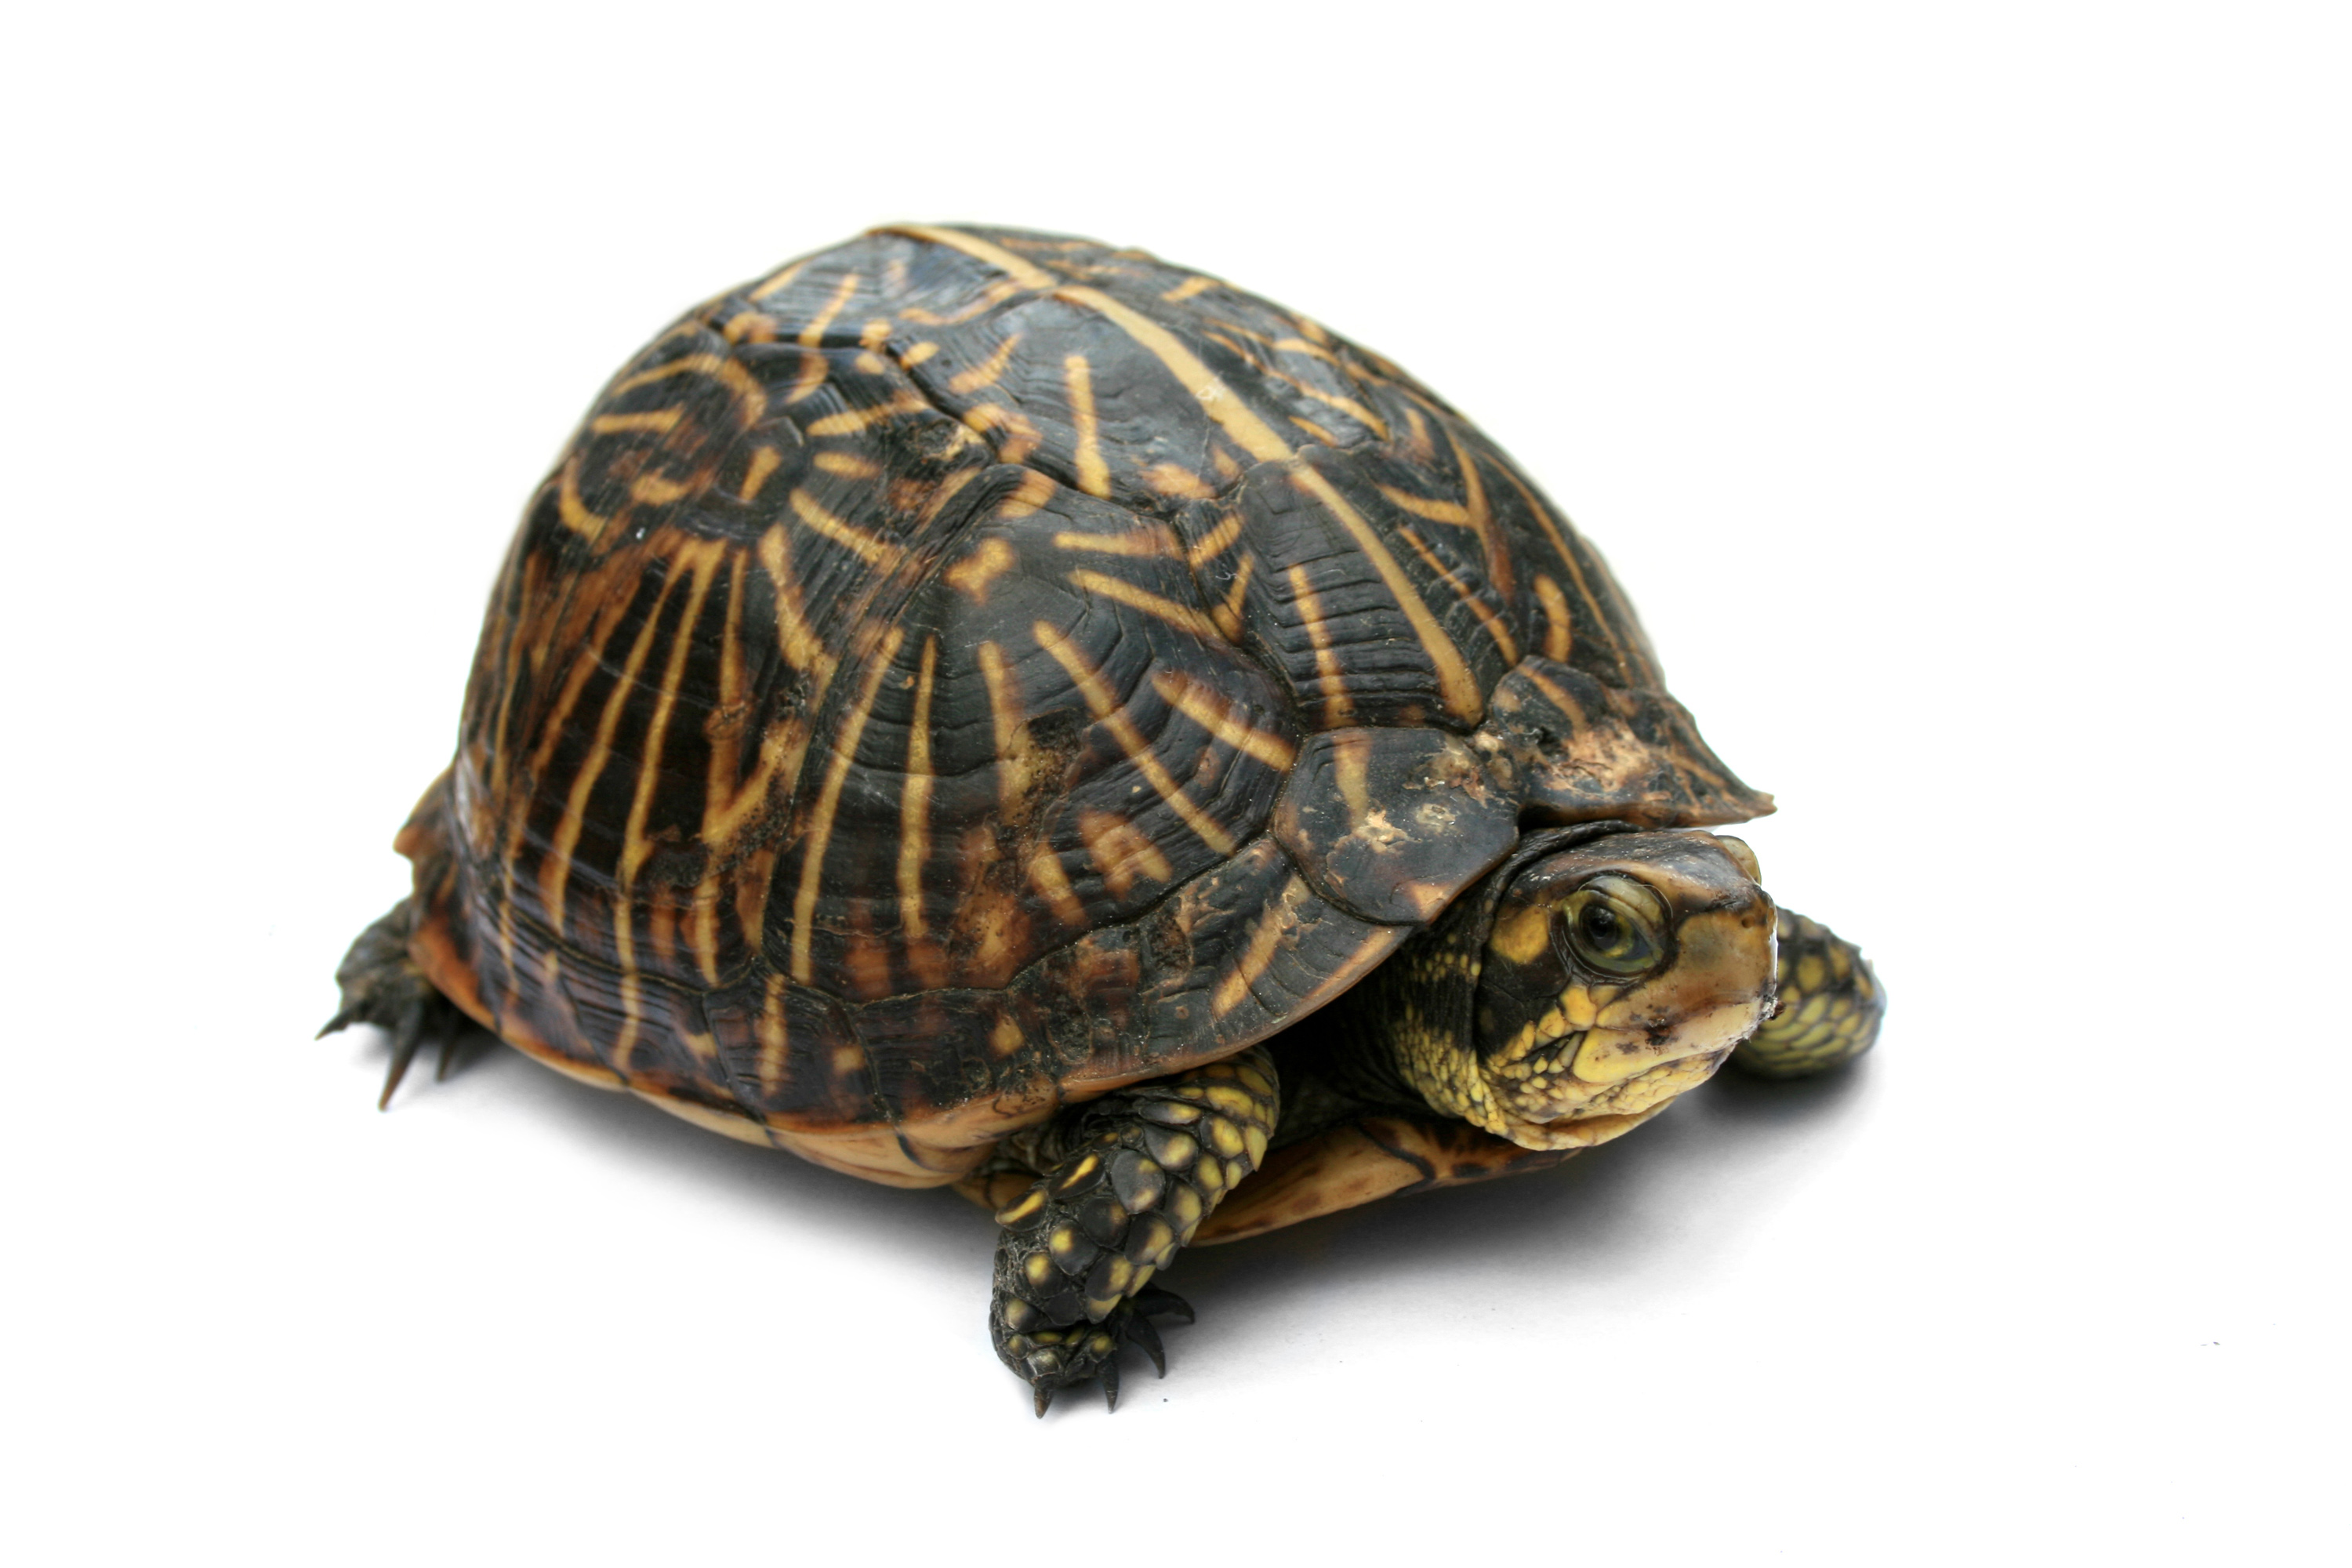 Box Turtle Wikipedia